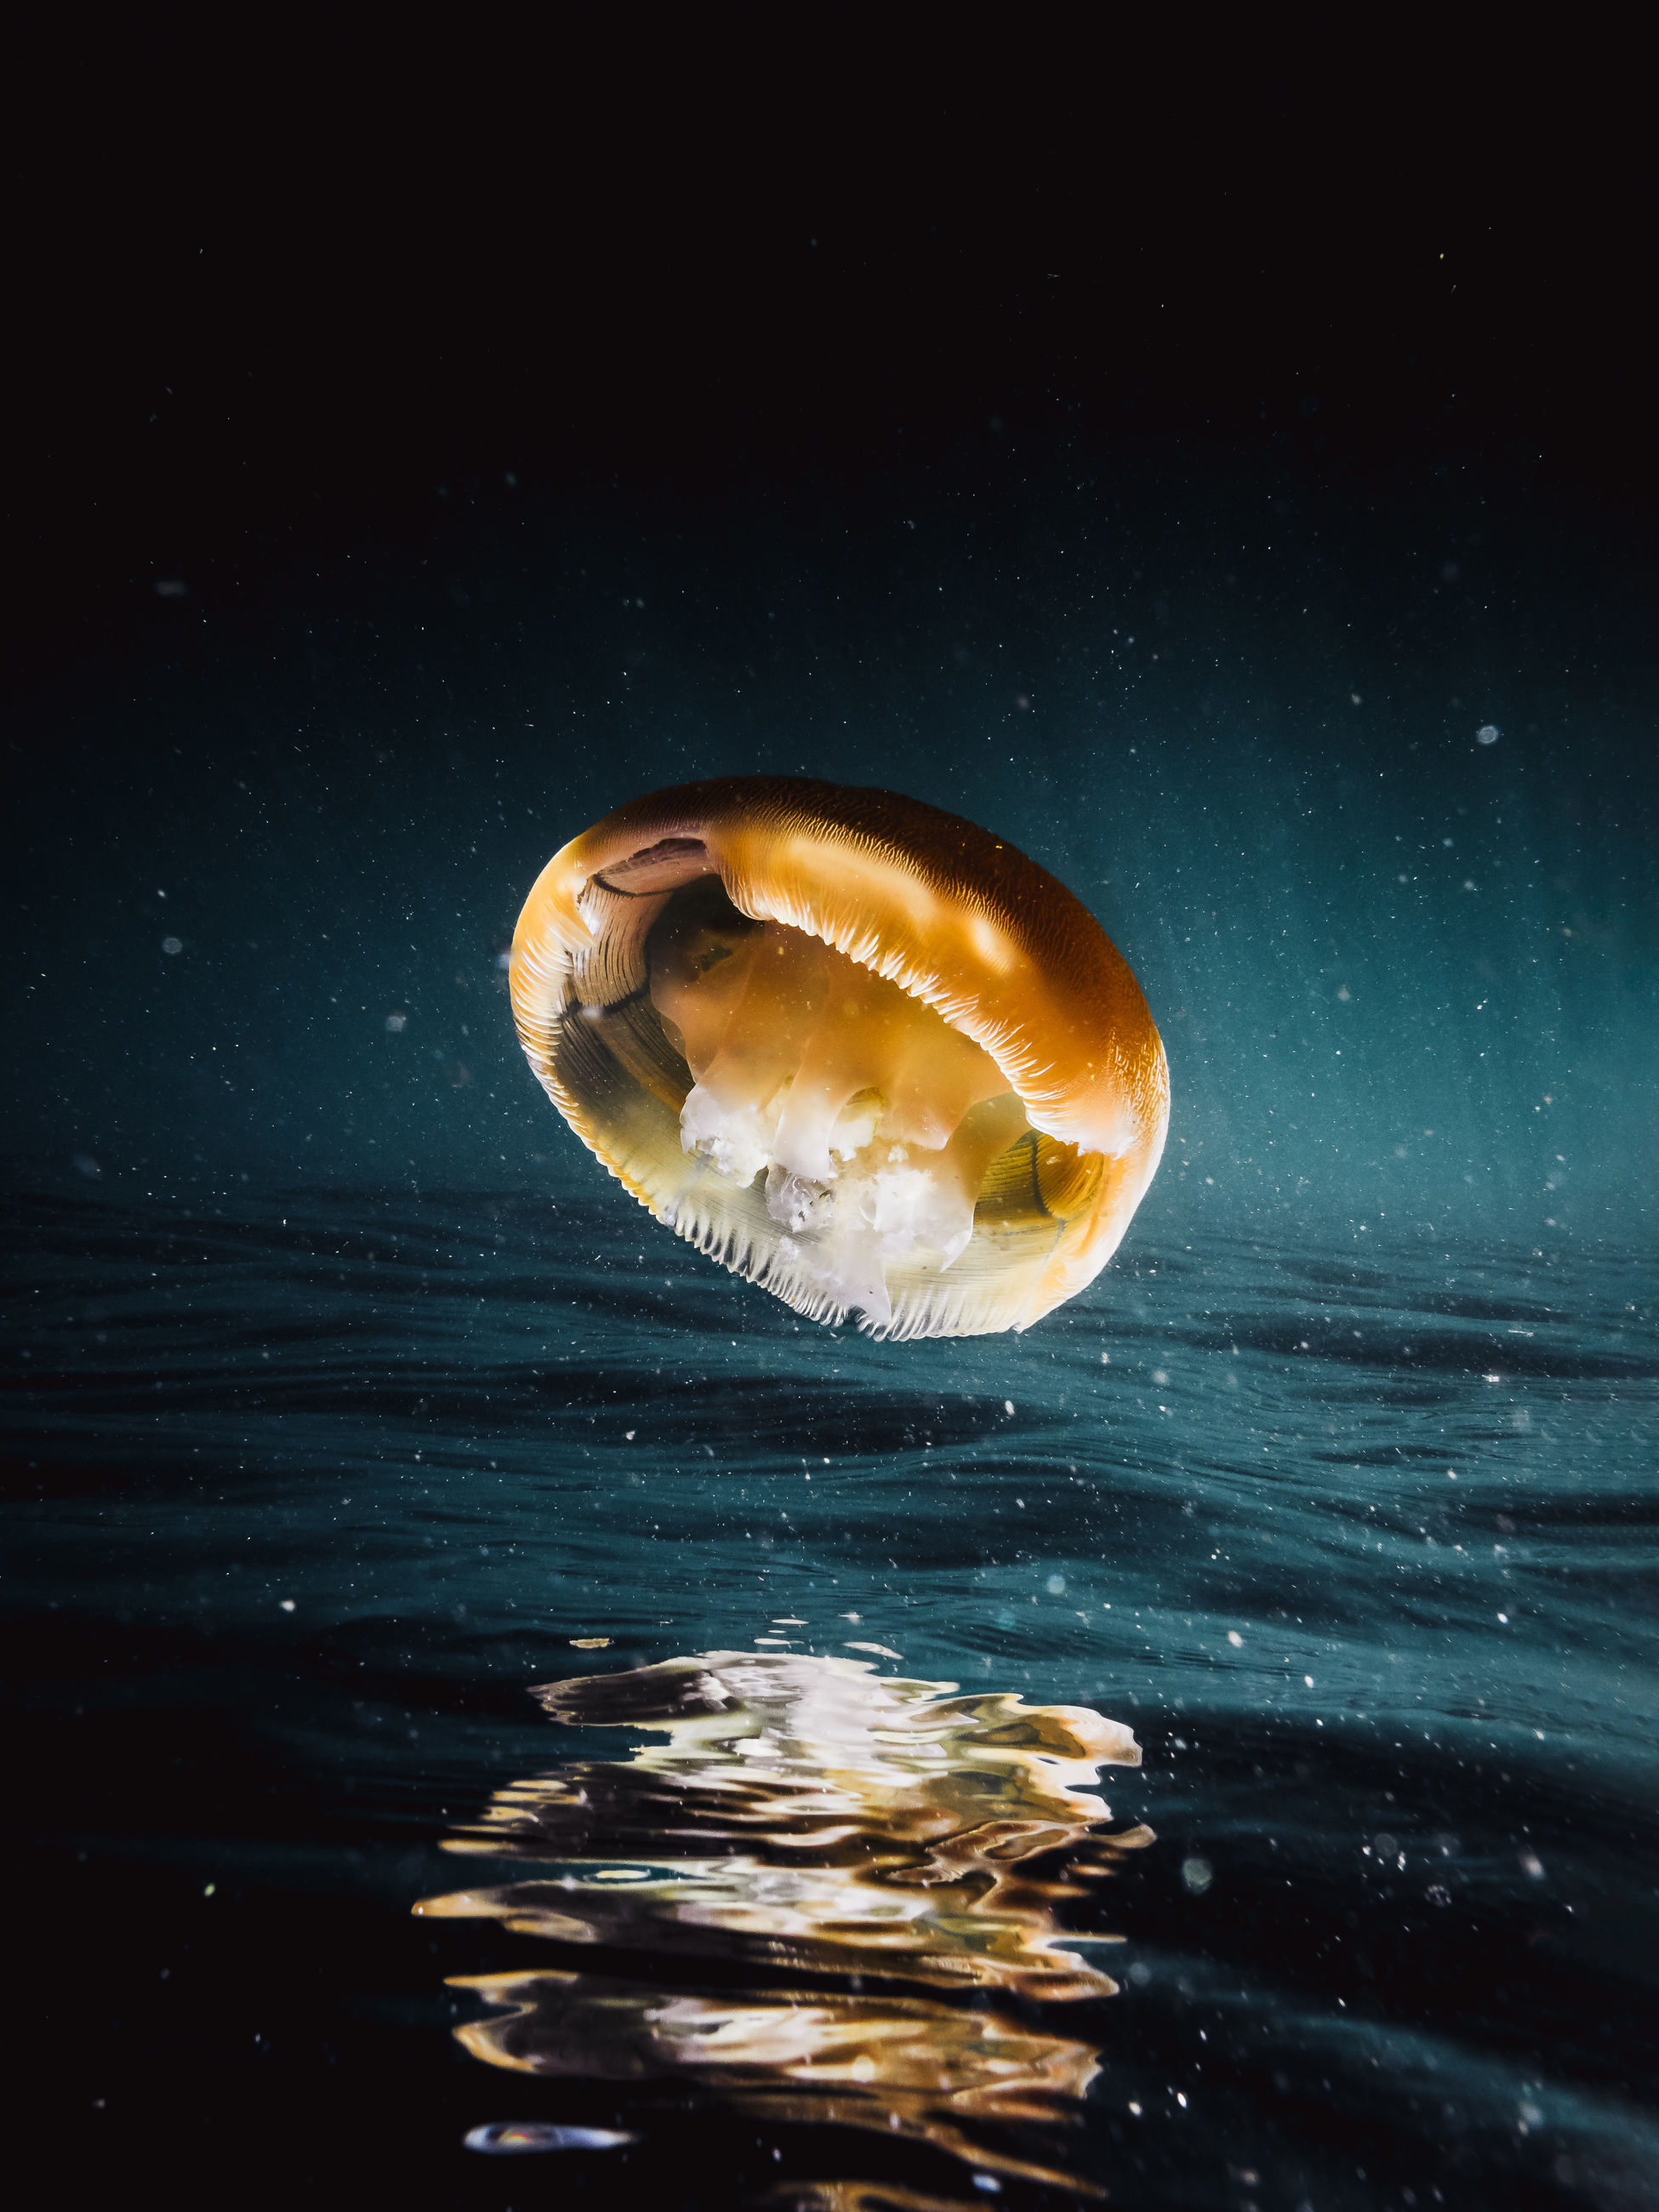 water, sea, nature, animal wildlife, one animal, animal themes, animals in the wild, animal, no people, waterfront, shell, swimming, reflection, close-up, motion, beauty in nature, marine, outdoors, invertebrate, floating on water